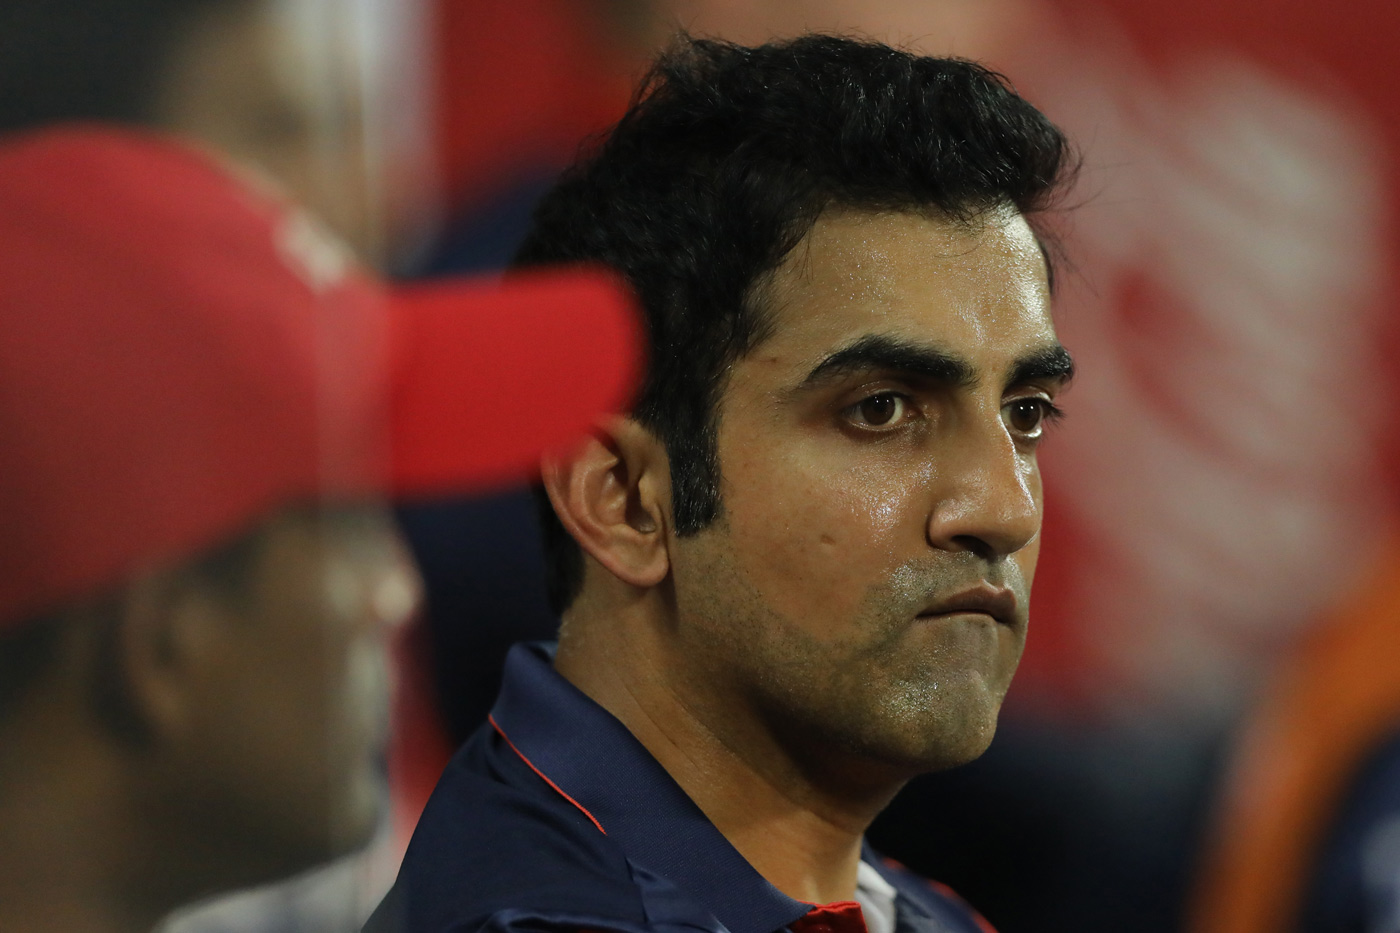 Fans Trolled Gautam Gambhir As They Think He Takes Dig At Virat Kohli